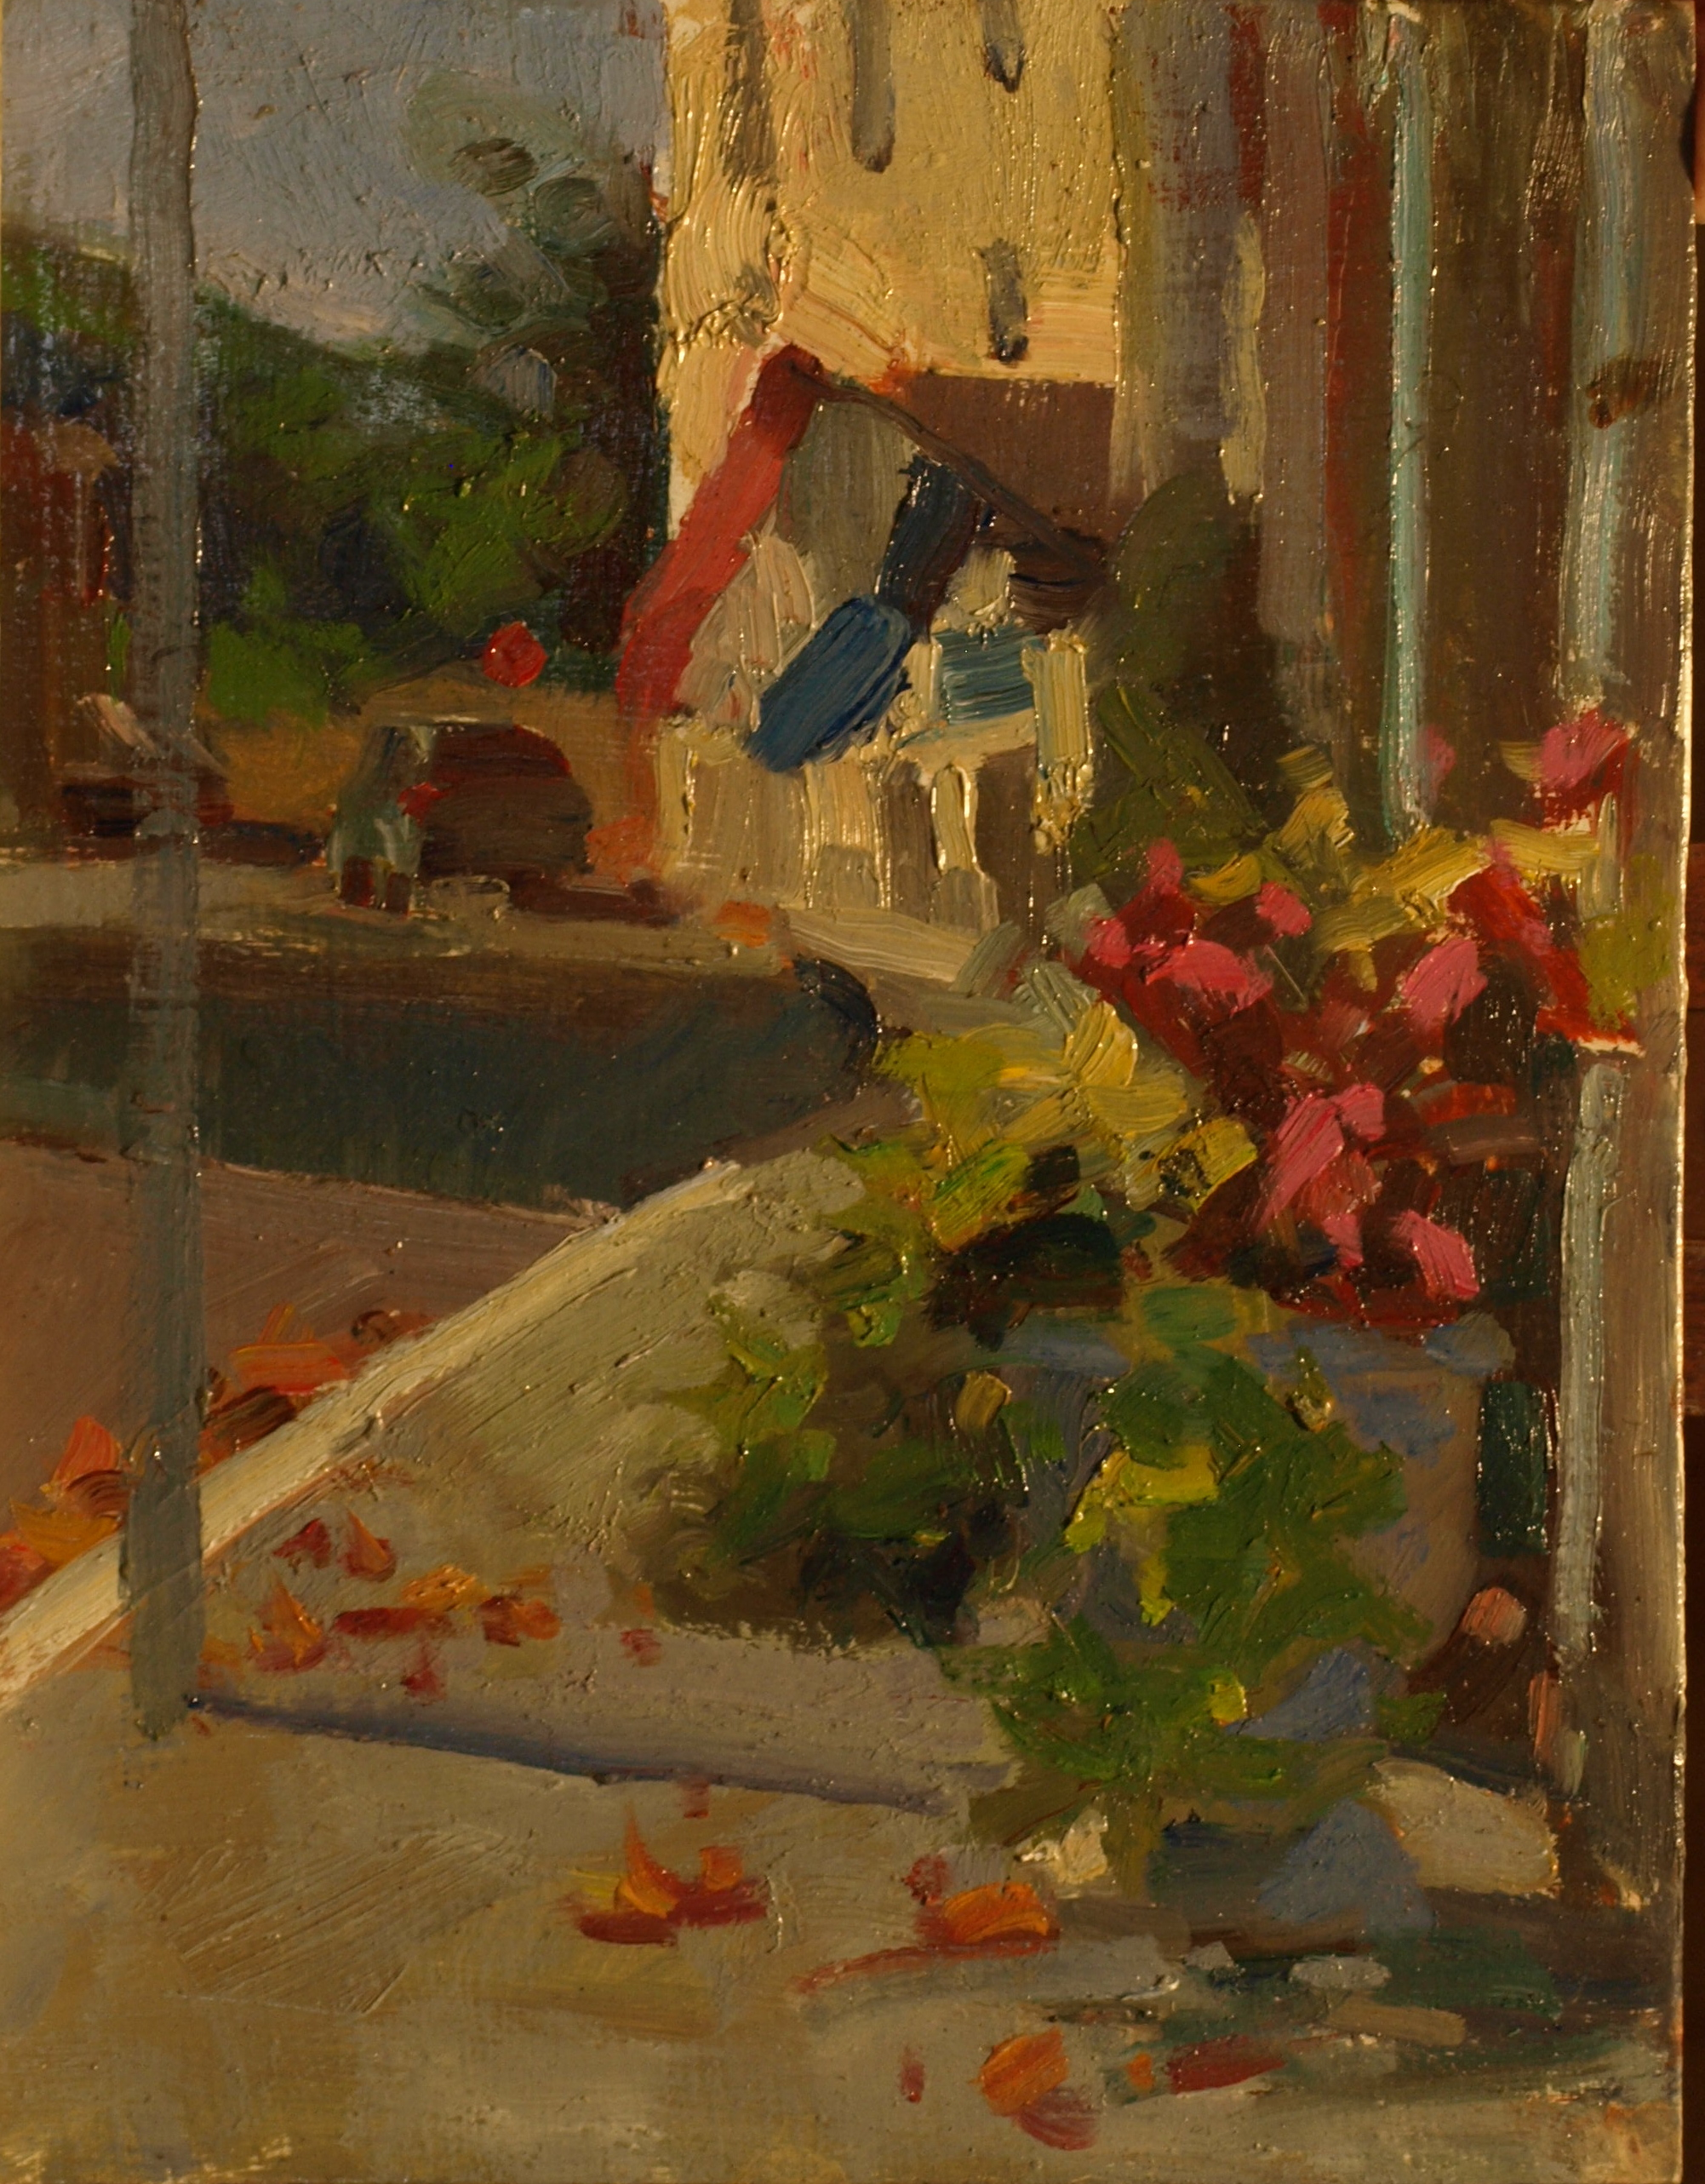 Planter -- Church Street, Oil on Panel, 10 x 8 Inches, by Susan Grisell, $165